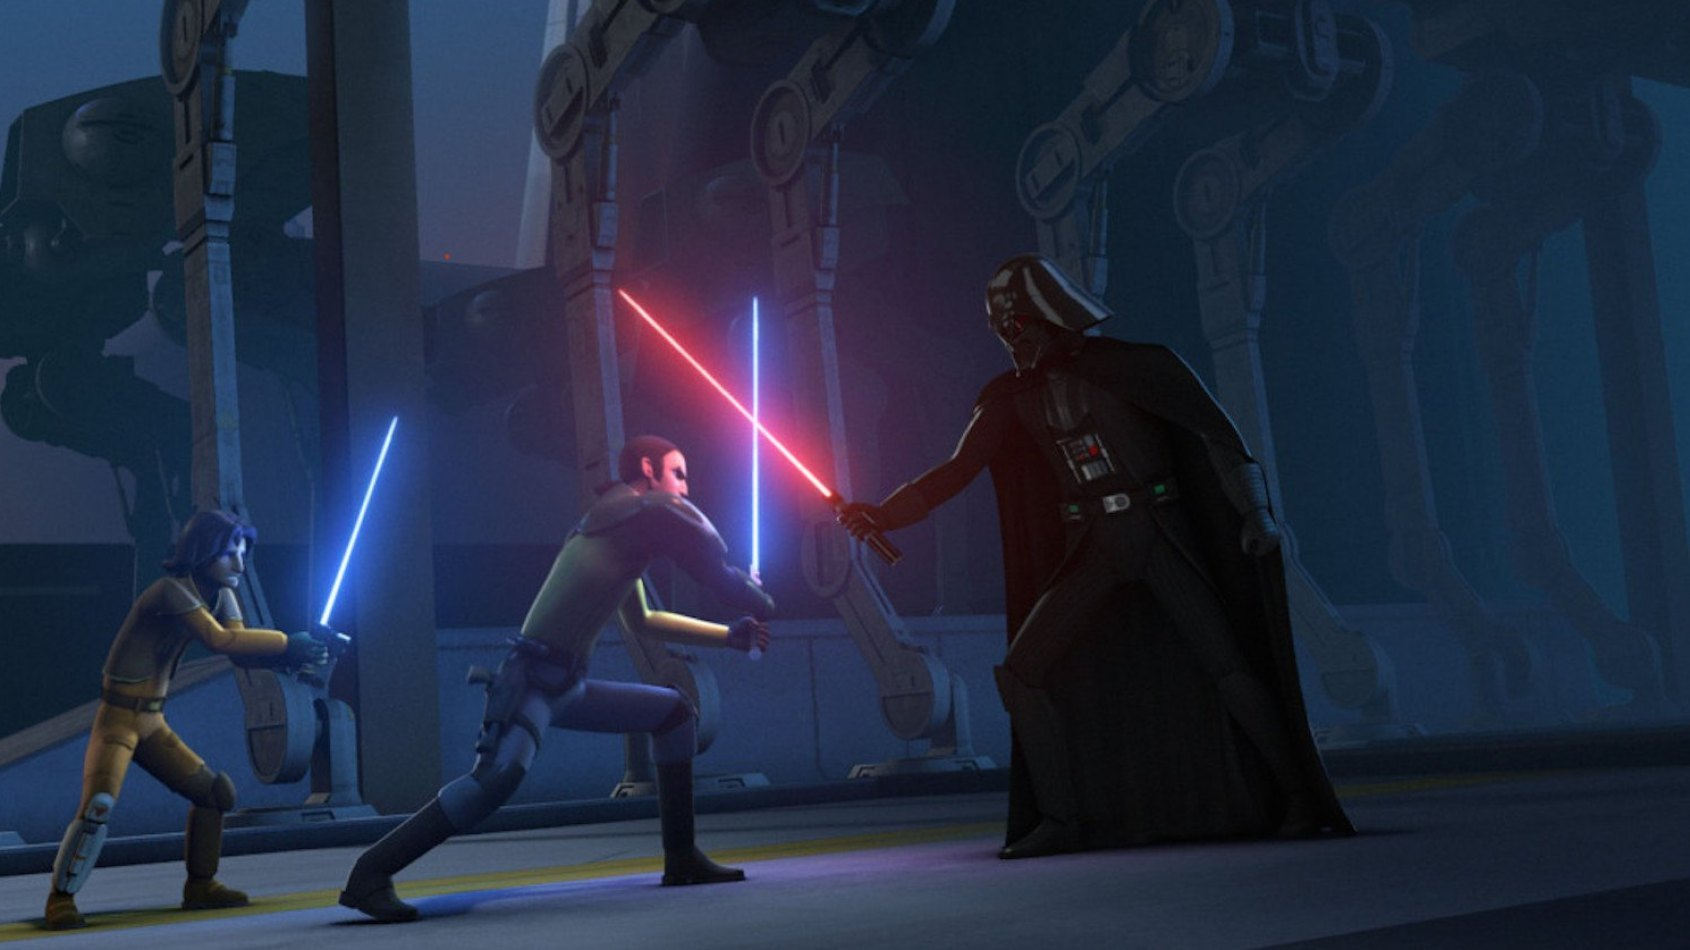 Comment la trilogie originale a inspiré Star Wars Rebels